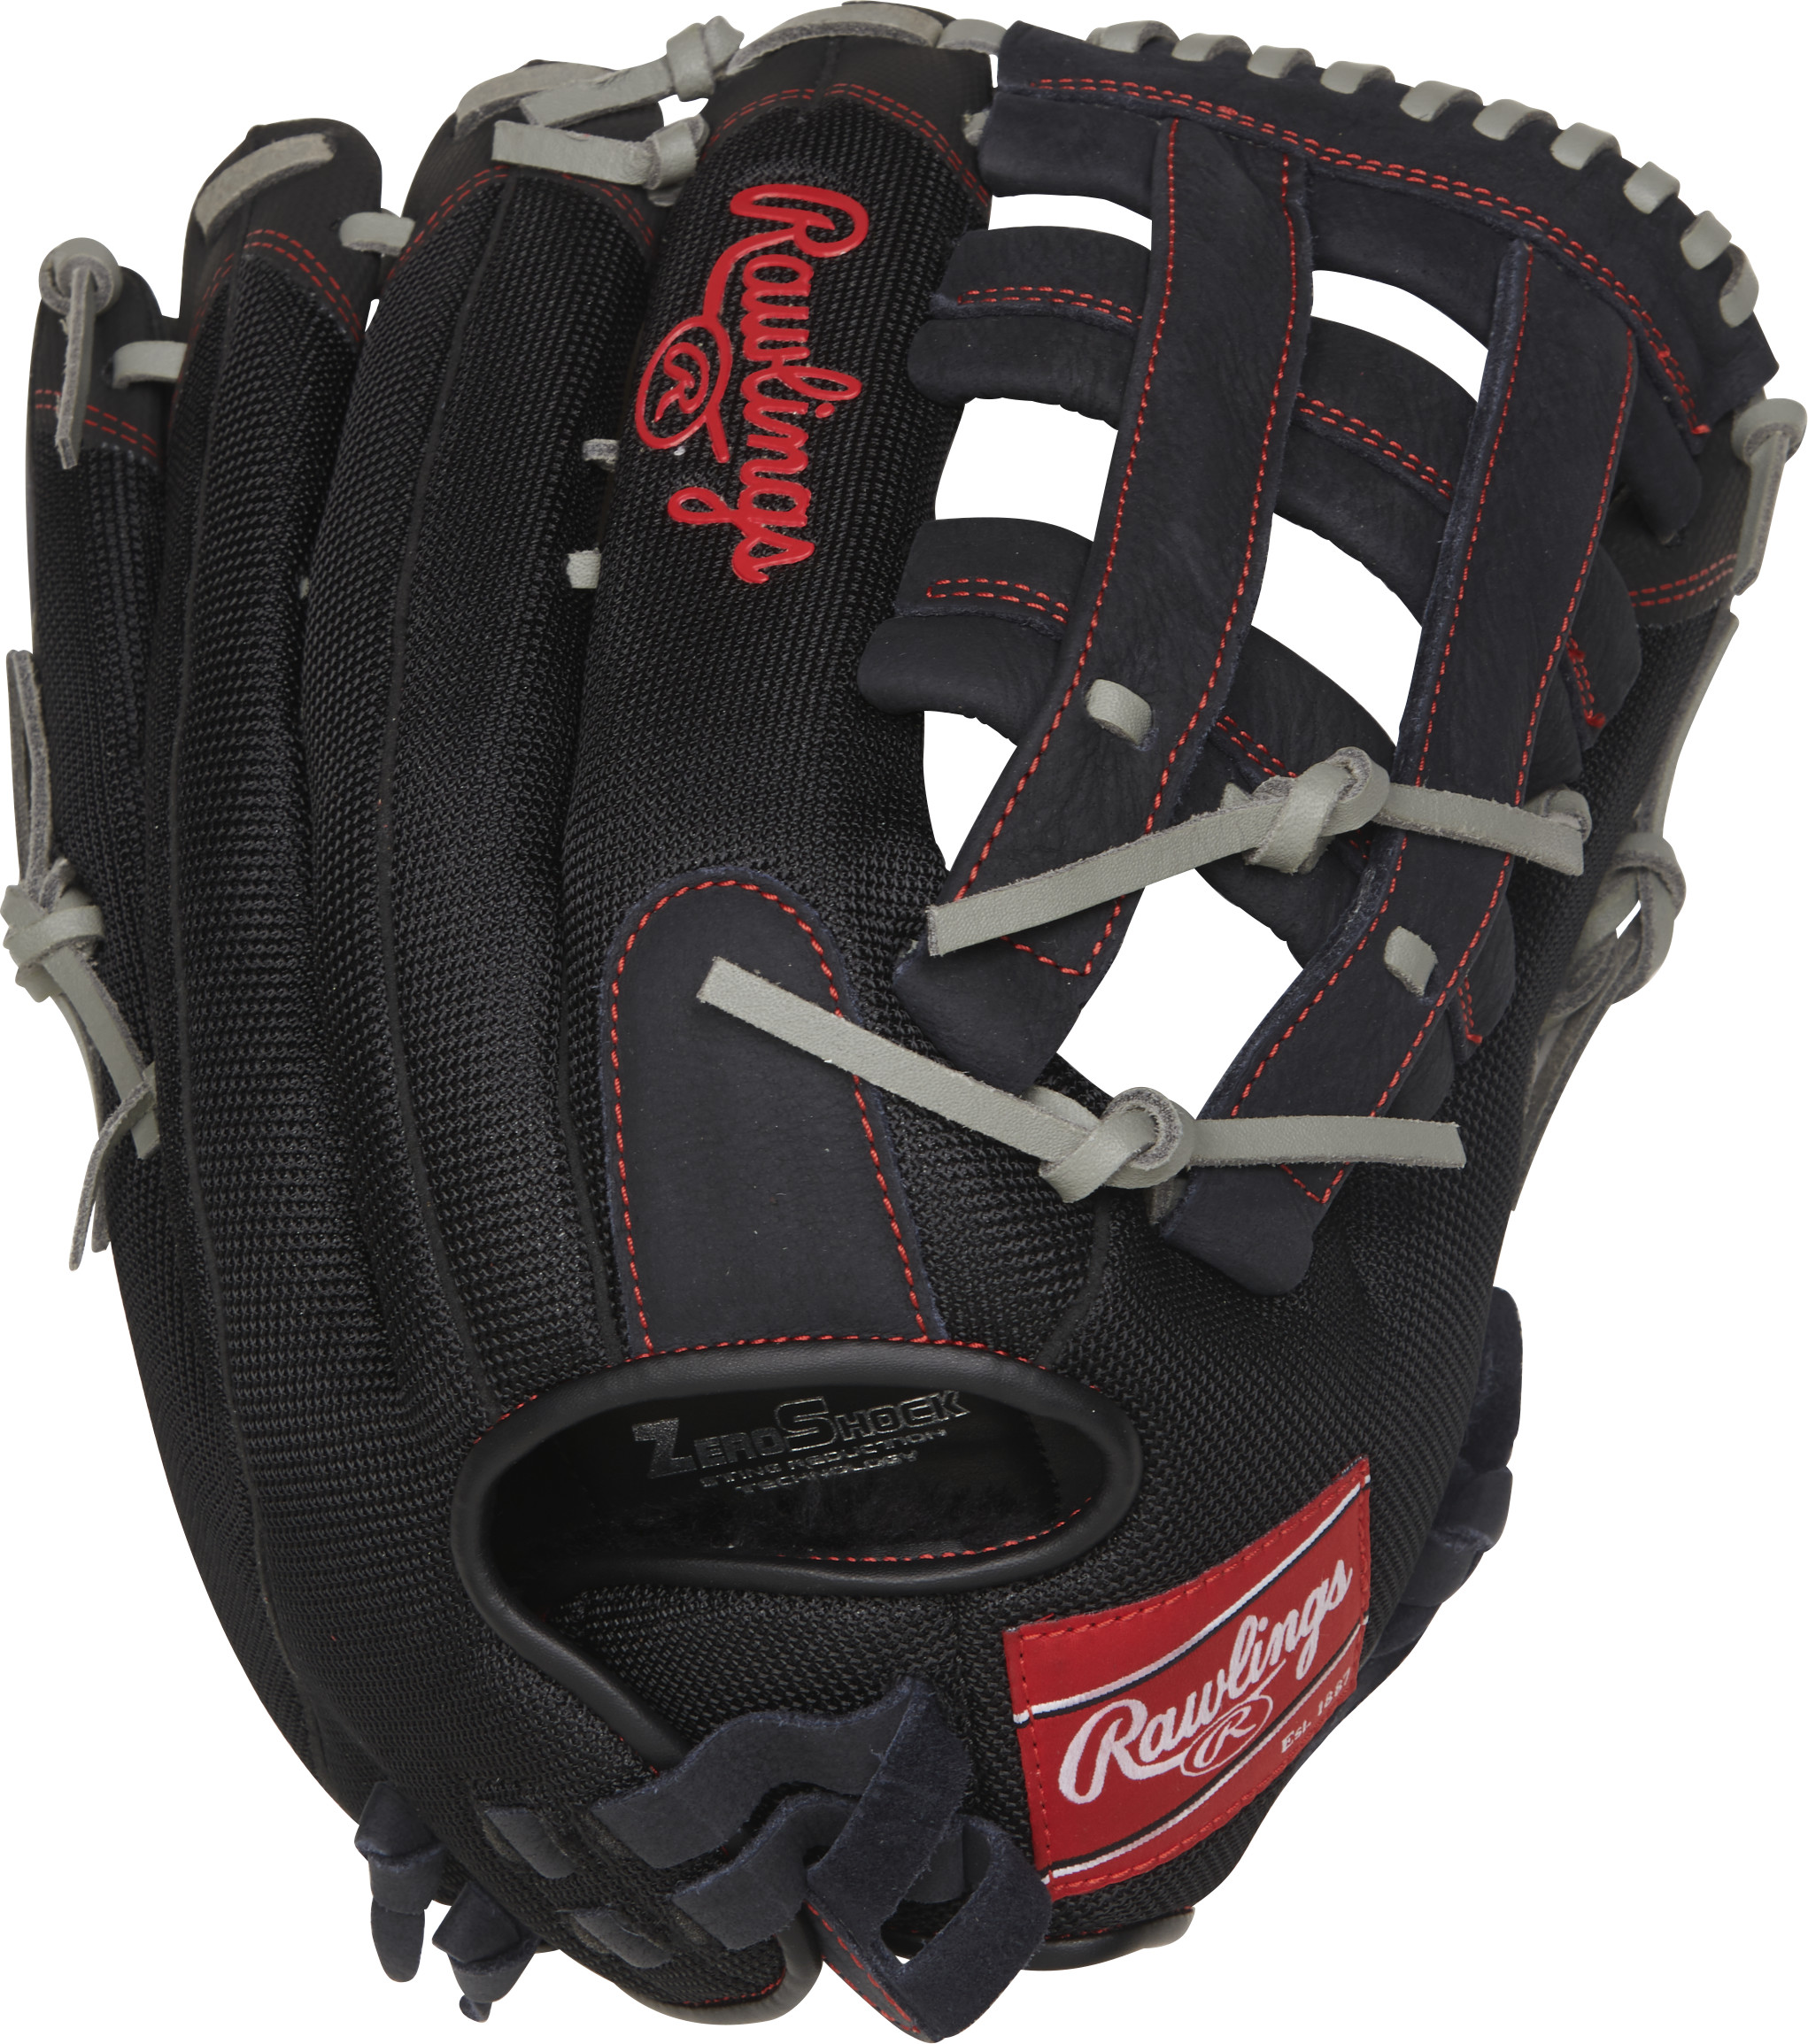 http://www.bestbatdeals.com/images/gloves/rawlings/R15BGS-2.jpg